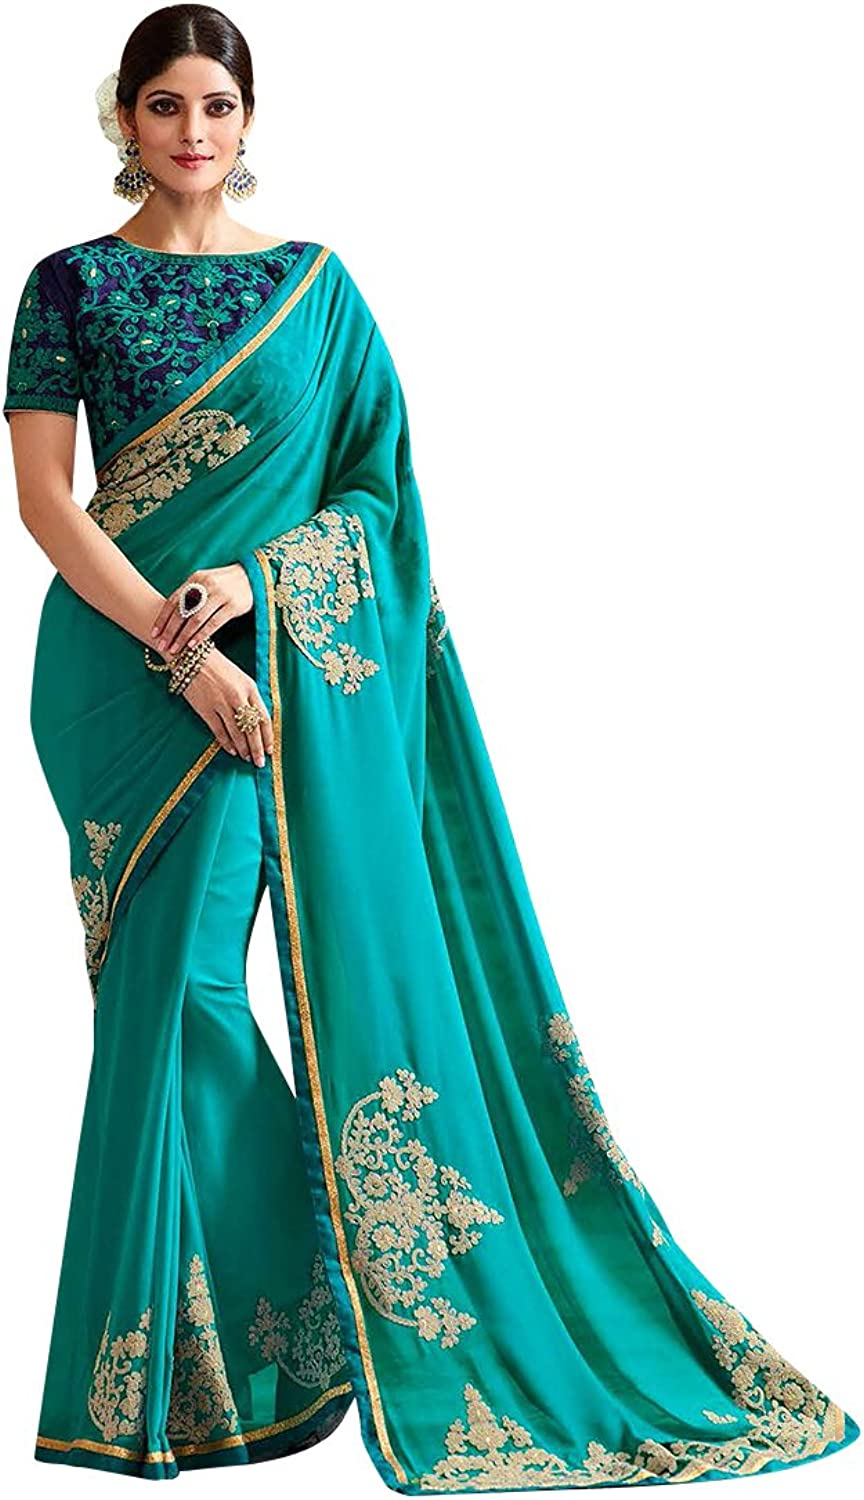 New Bridal Saree Sari New Launch Collection Blouse Wedding Ceremony Women Punjabi saree 31